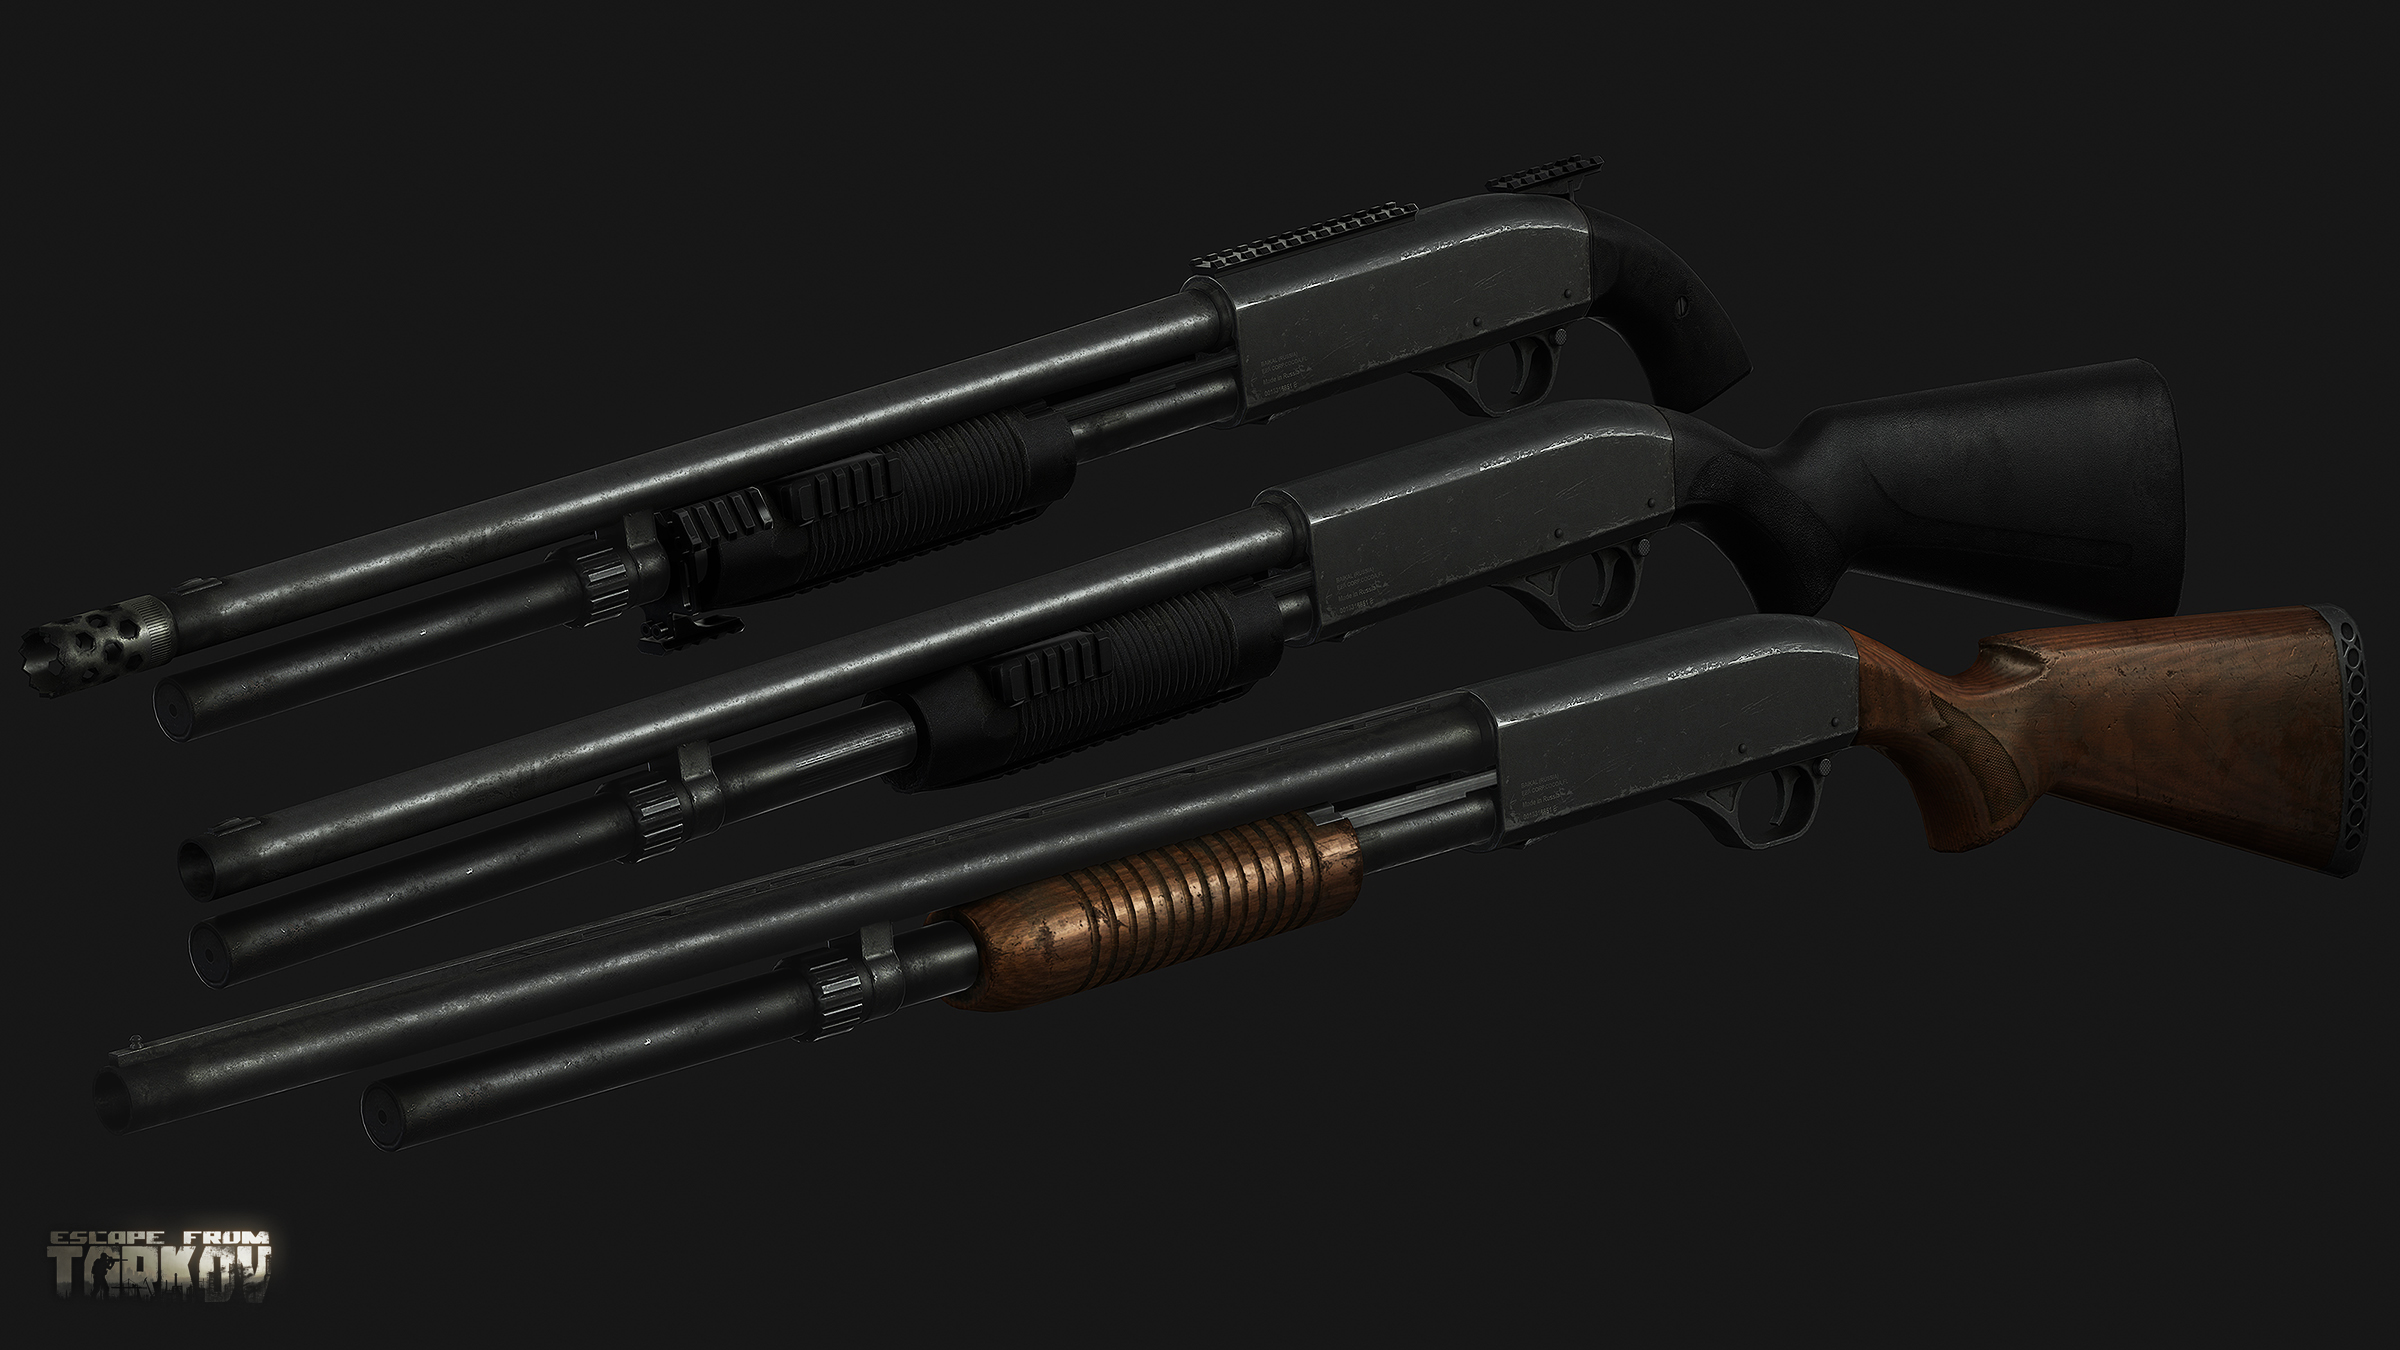 MP-133 - Weapons department - Escape from Tarkov Forum